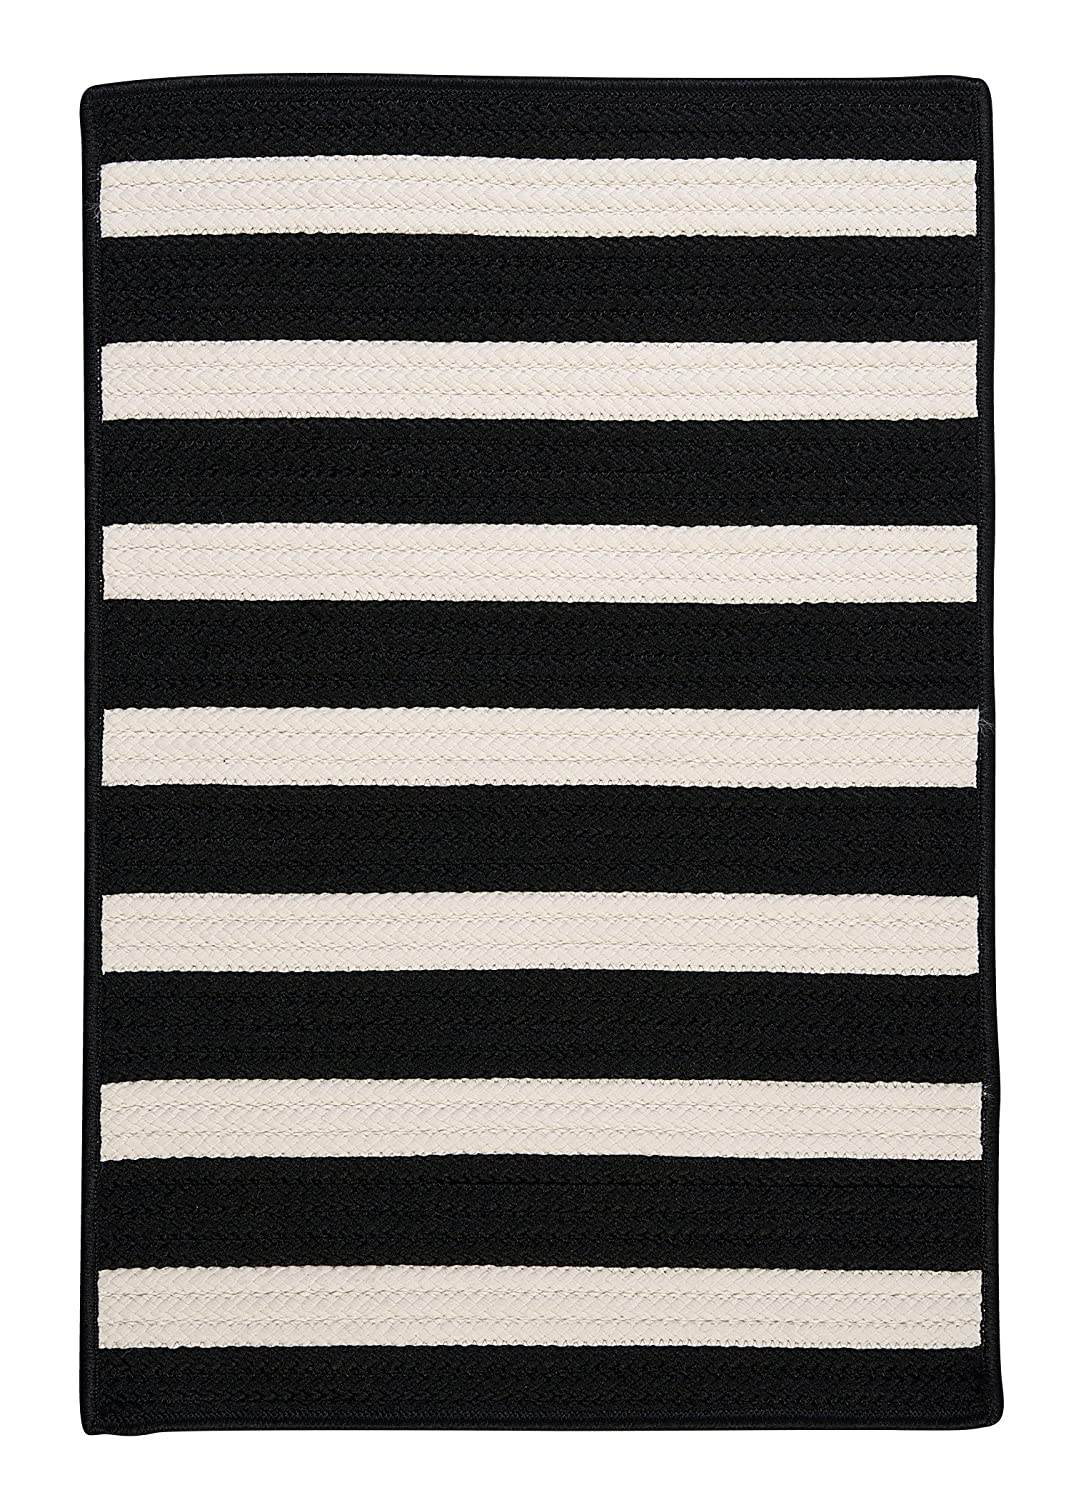 Stripe It Rug Yellow Shimmer Colonial Mills TR39R024X036S 2 by 3-Feet